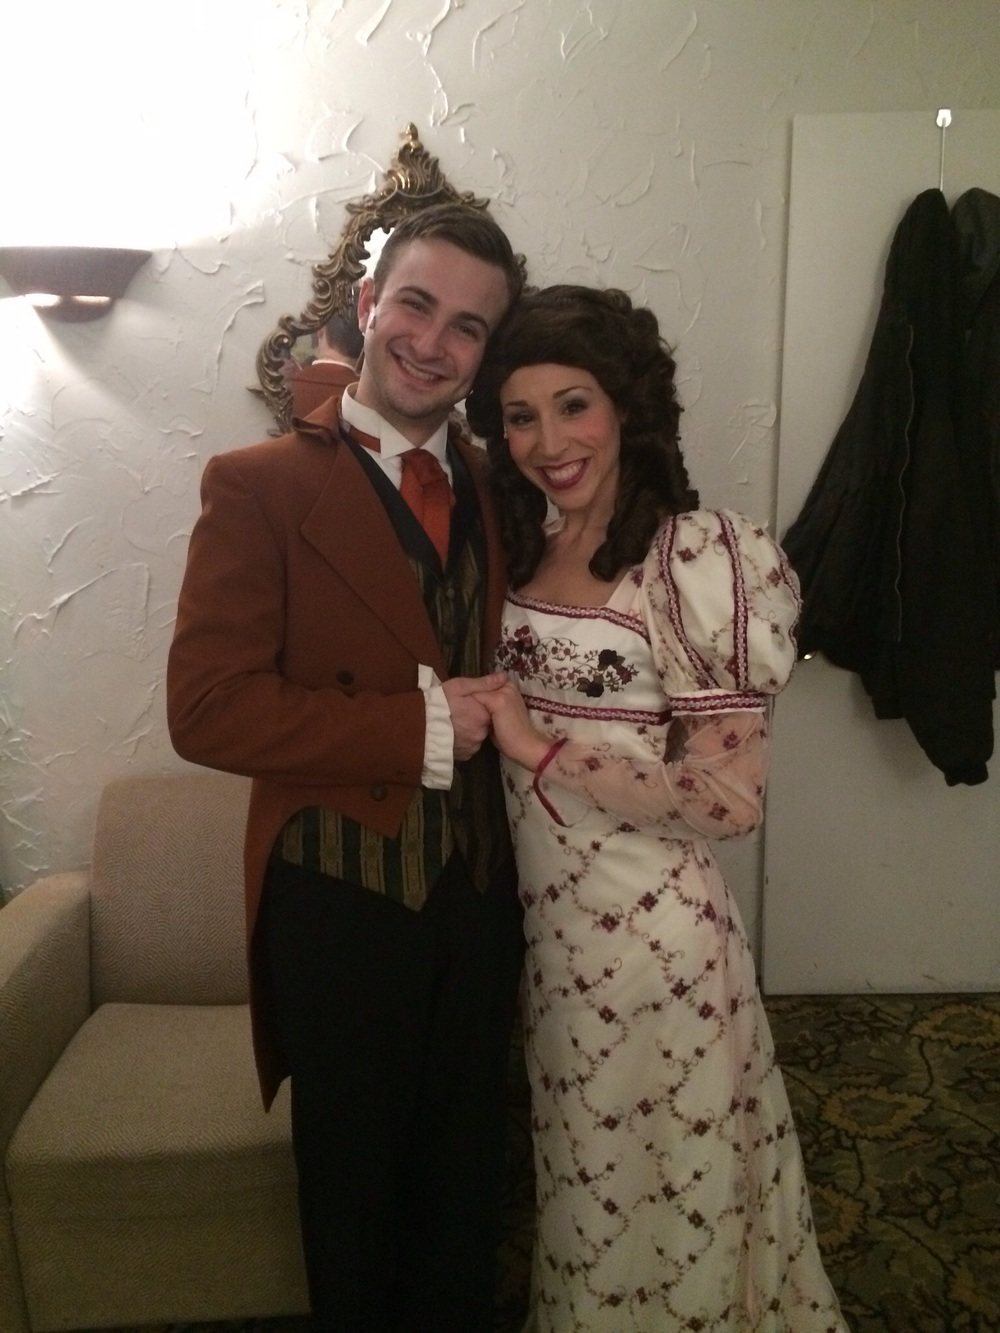 Young Scrooge (Blake Spellacy) and Belle